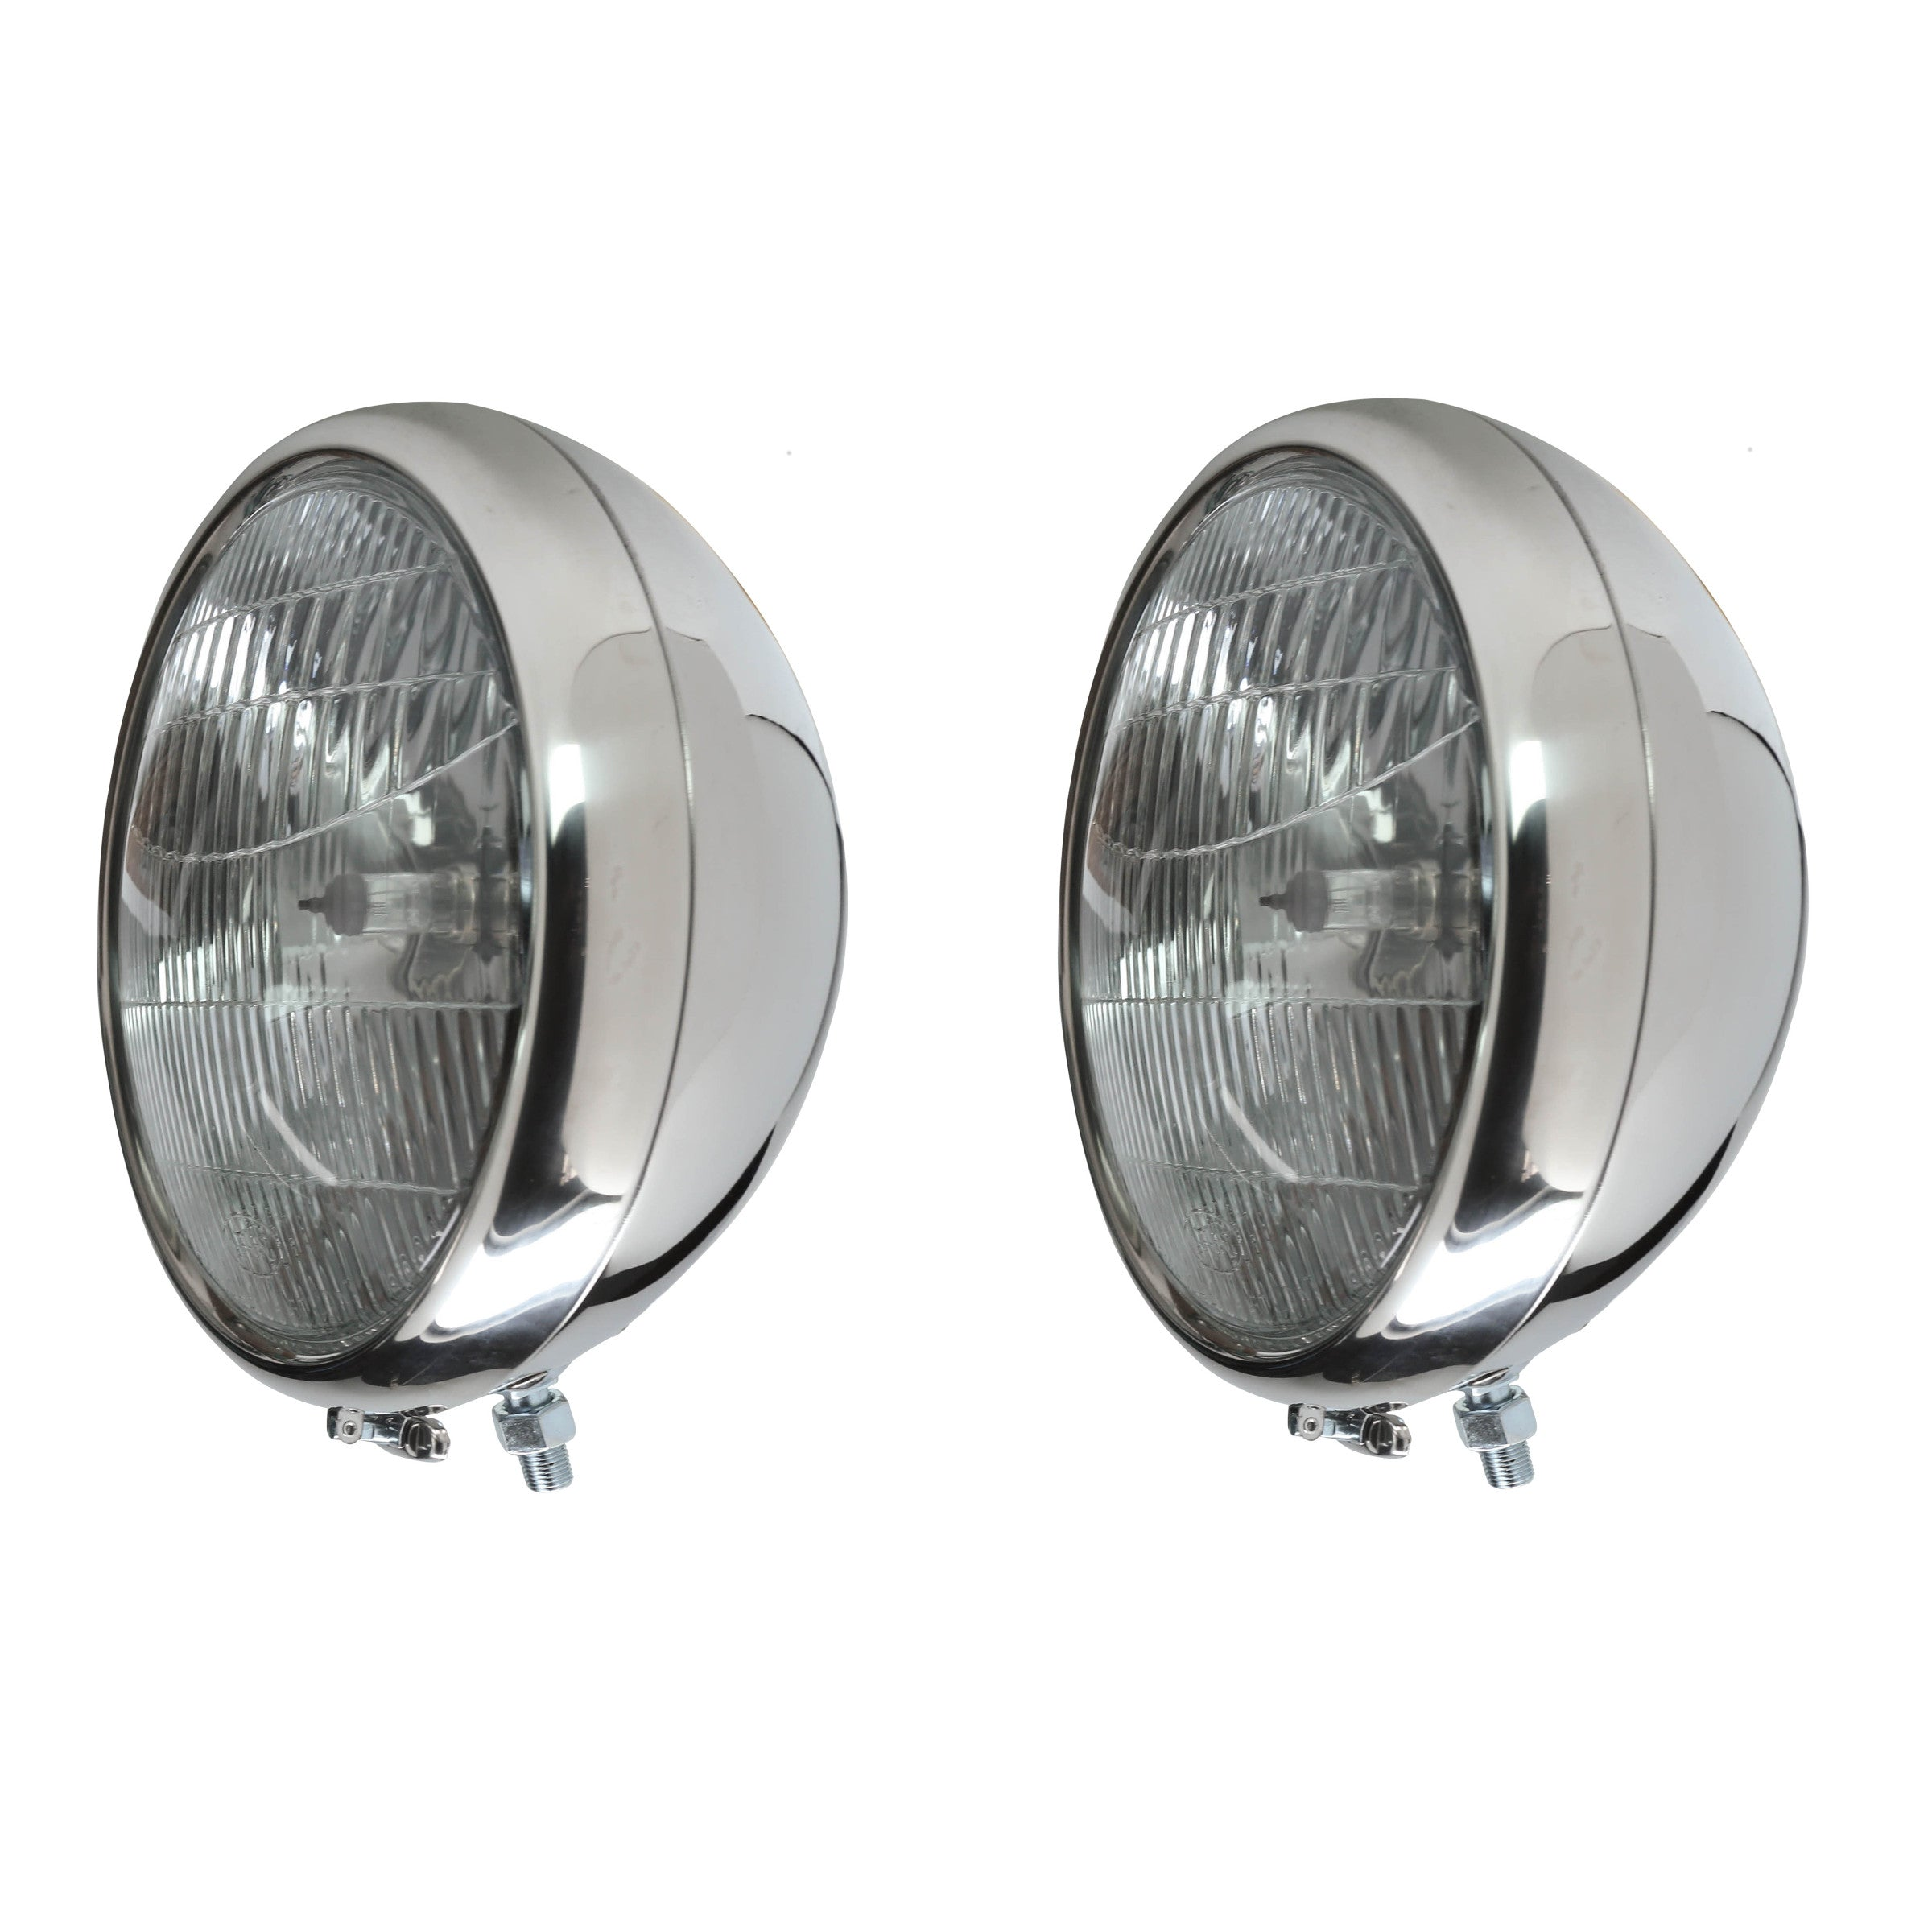 Headlights (Quartz Halogen with